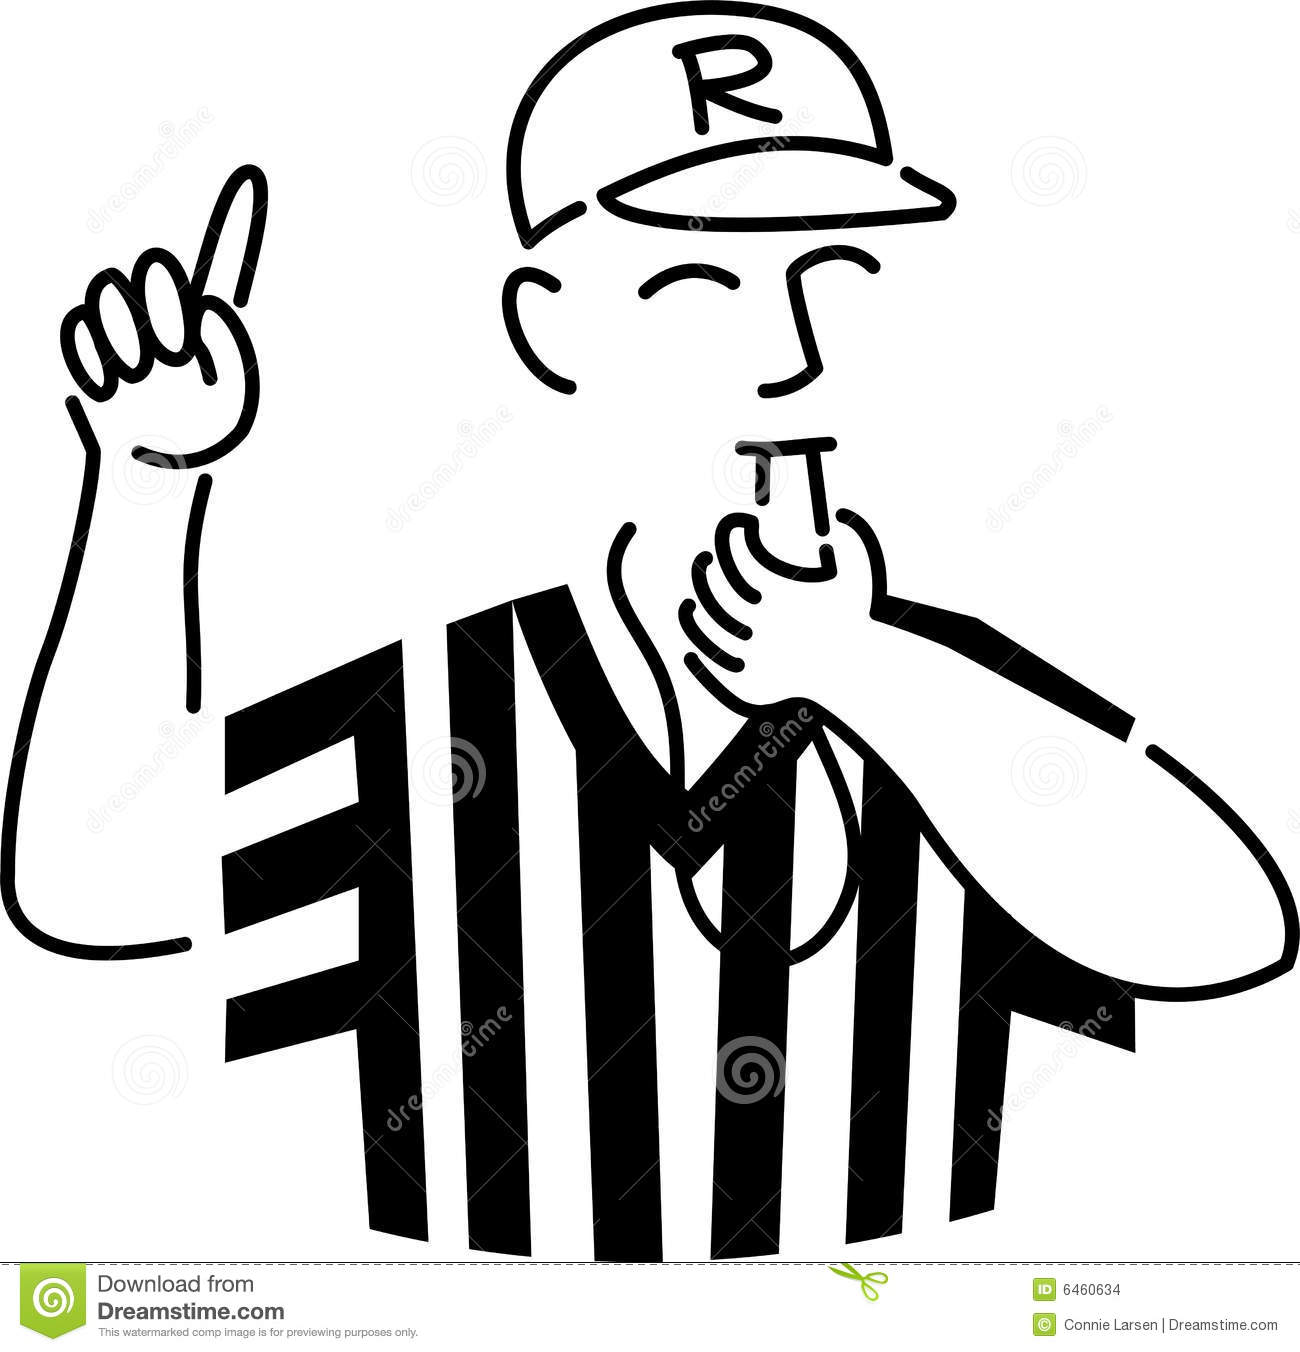 Cartoon illustration of a sports referee blowing his whistle.